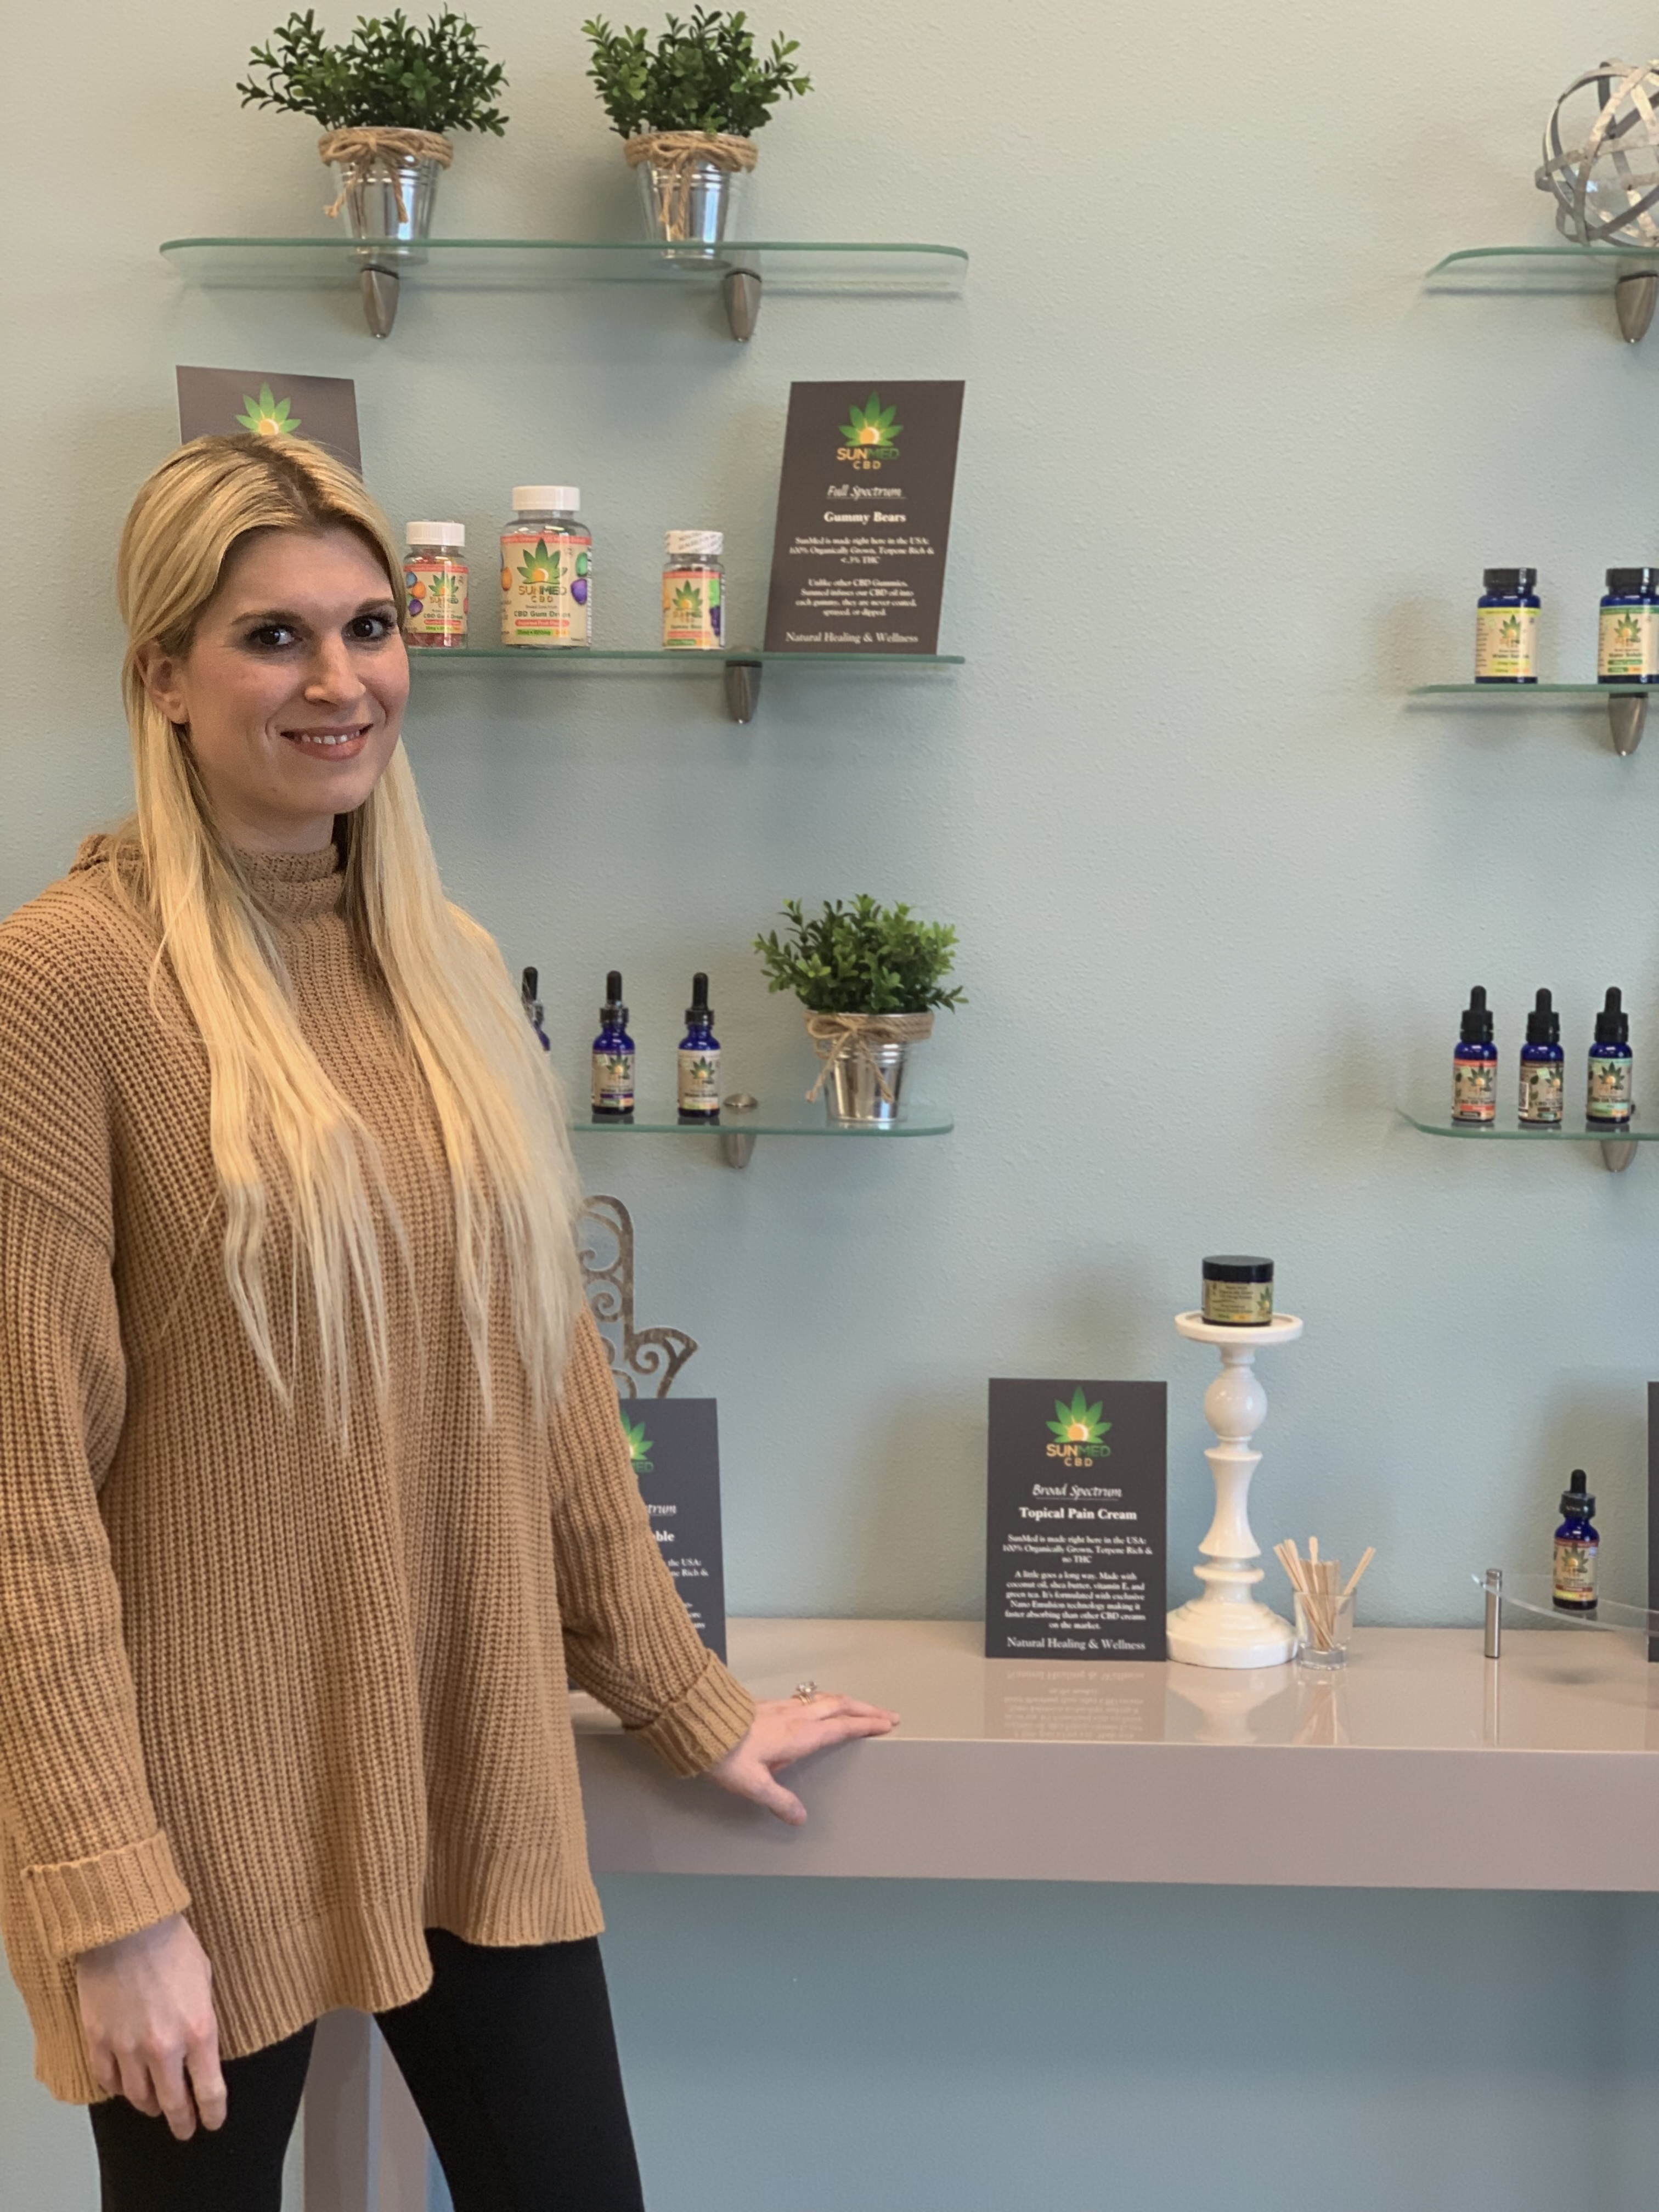 New CBD boutique open for business in Weston - Wausau Pilot